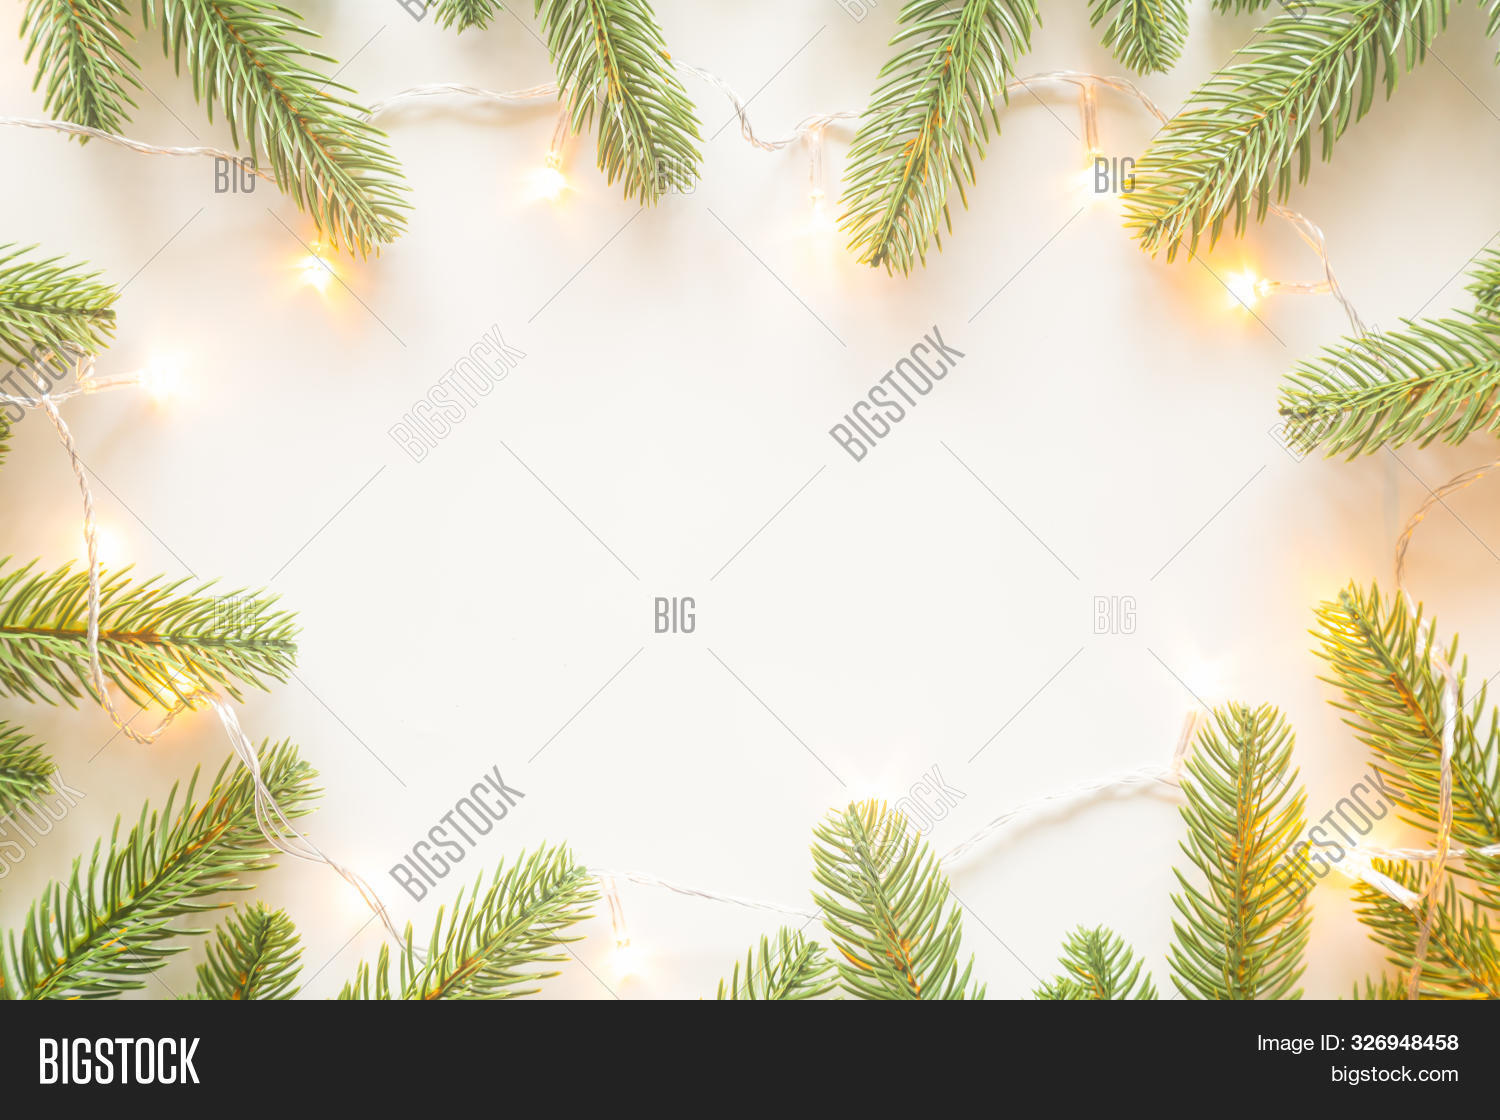 2020,background,ball,bauble,box,candy,cane,card,celebration,christmas,concept,decor,decoration,desk,eve,festive,fir,flat,flatlay,gift,golden,greeting,happy,holiday,isolate,lay,merry,minimal,new,ornament,overhead,pine,present,red,santa,season,snow,snowflakes,star,table,top,tree,view,white,winter,xmas,year